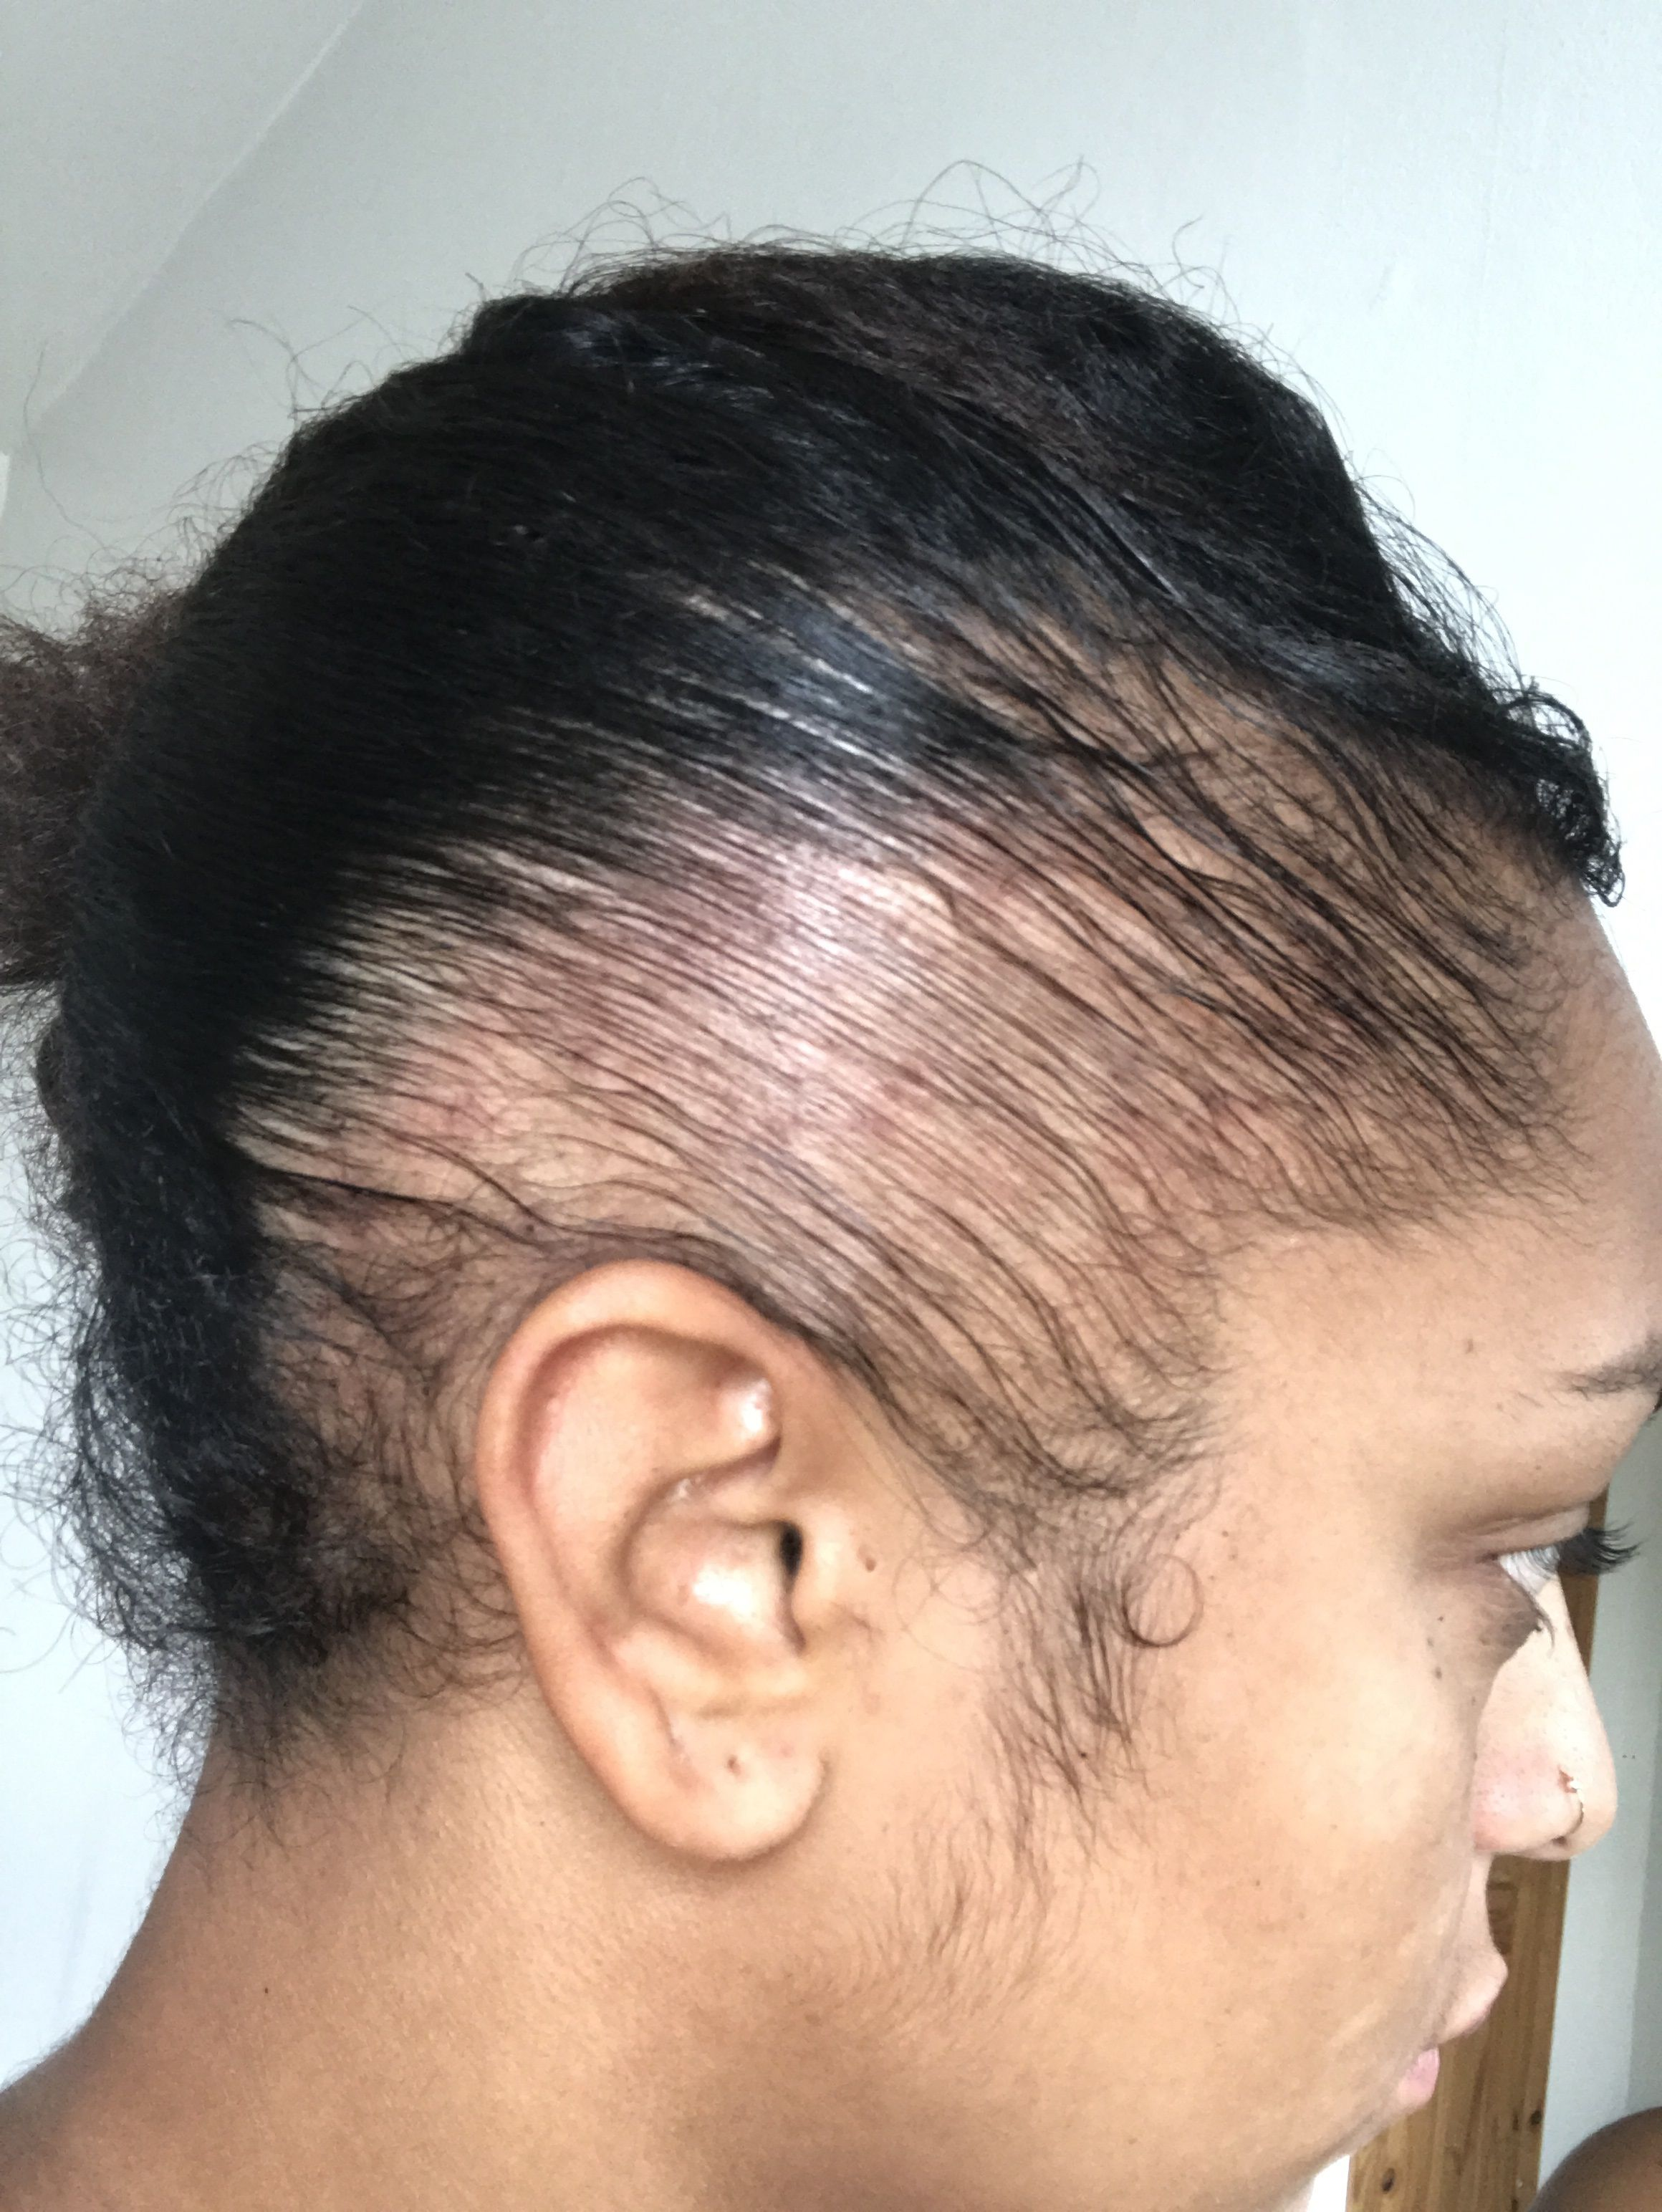 Traction Alopecia: Young Female Singer Warns of Self